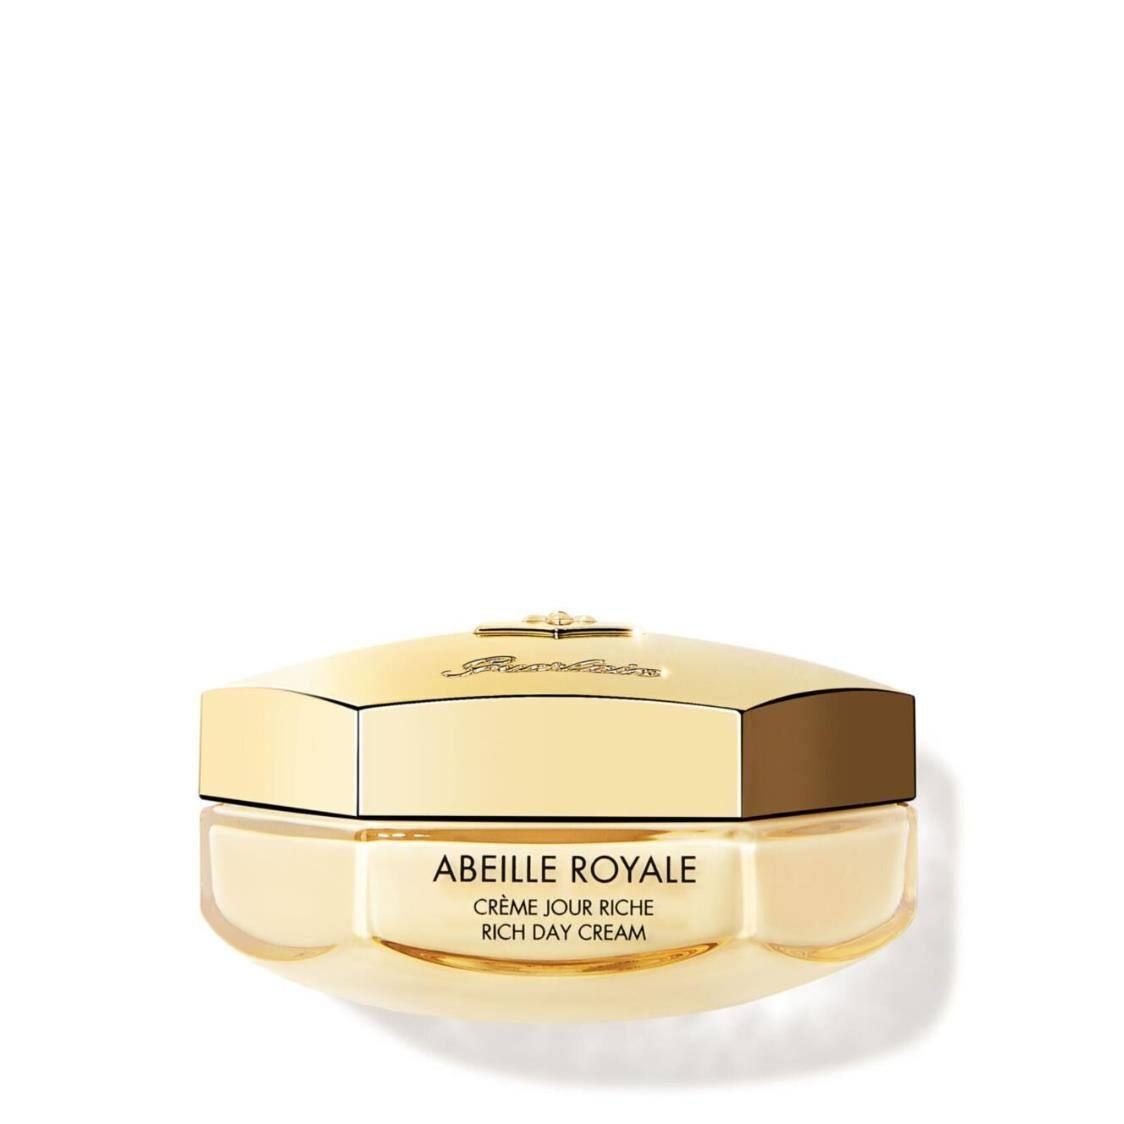 Abeille Royale Rich Cream 50ml